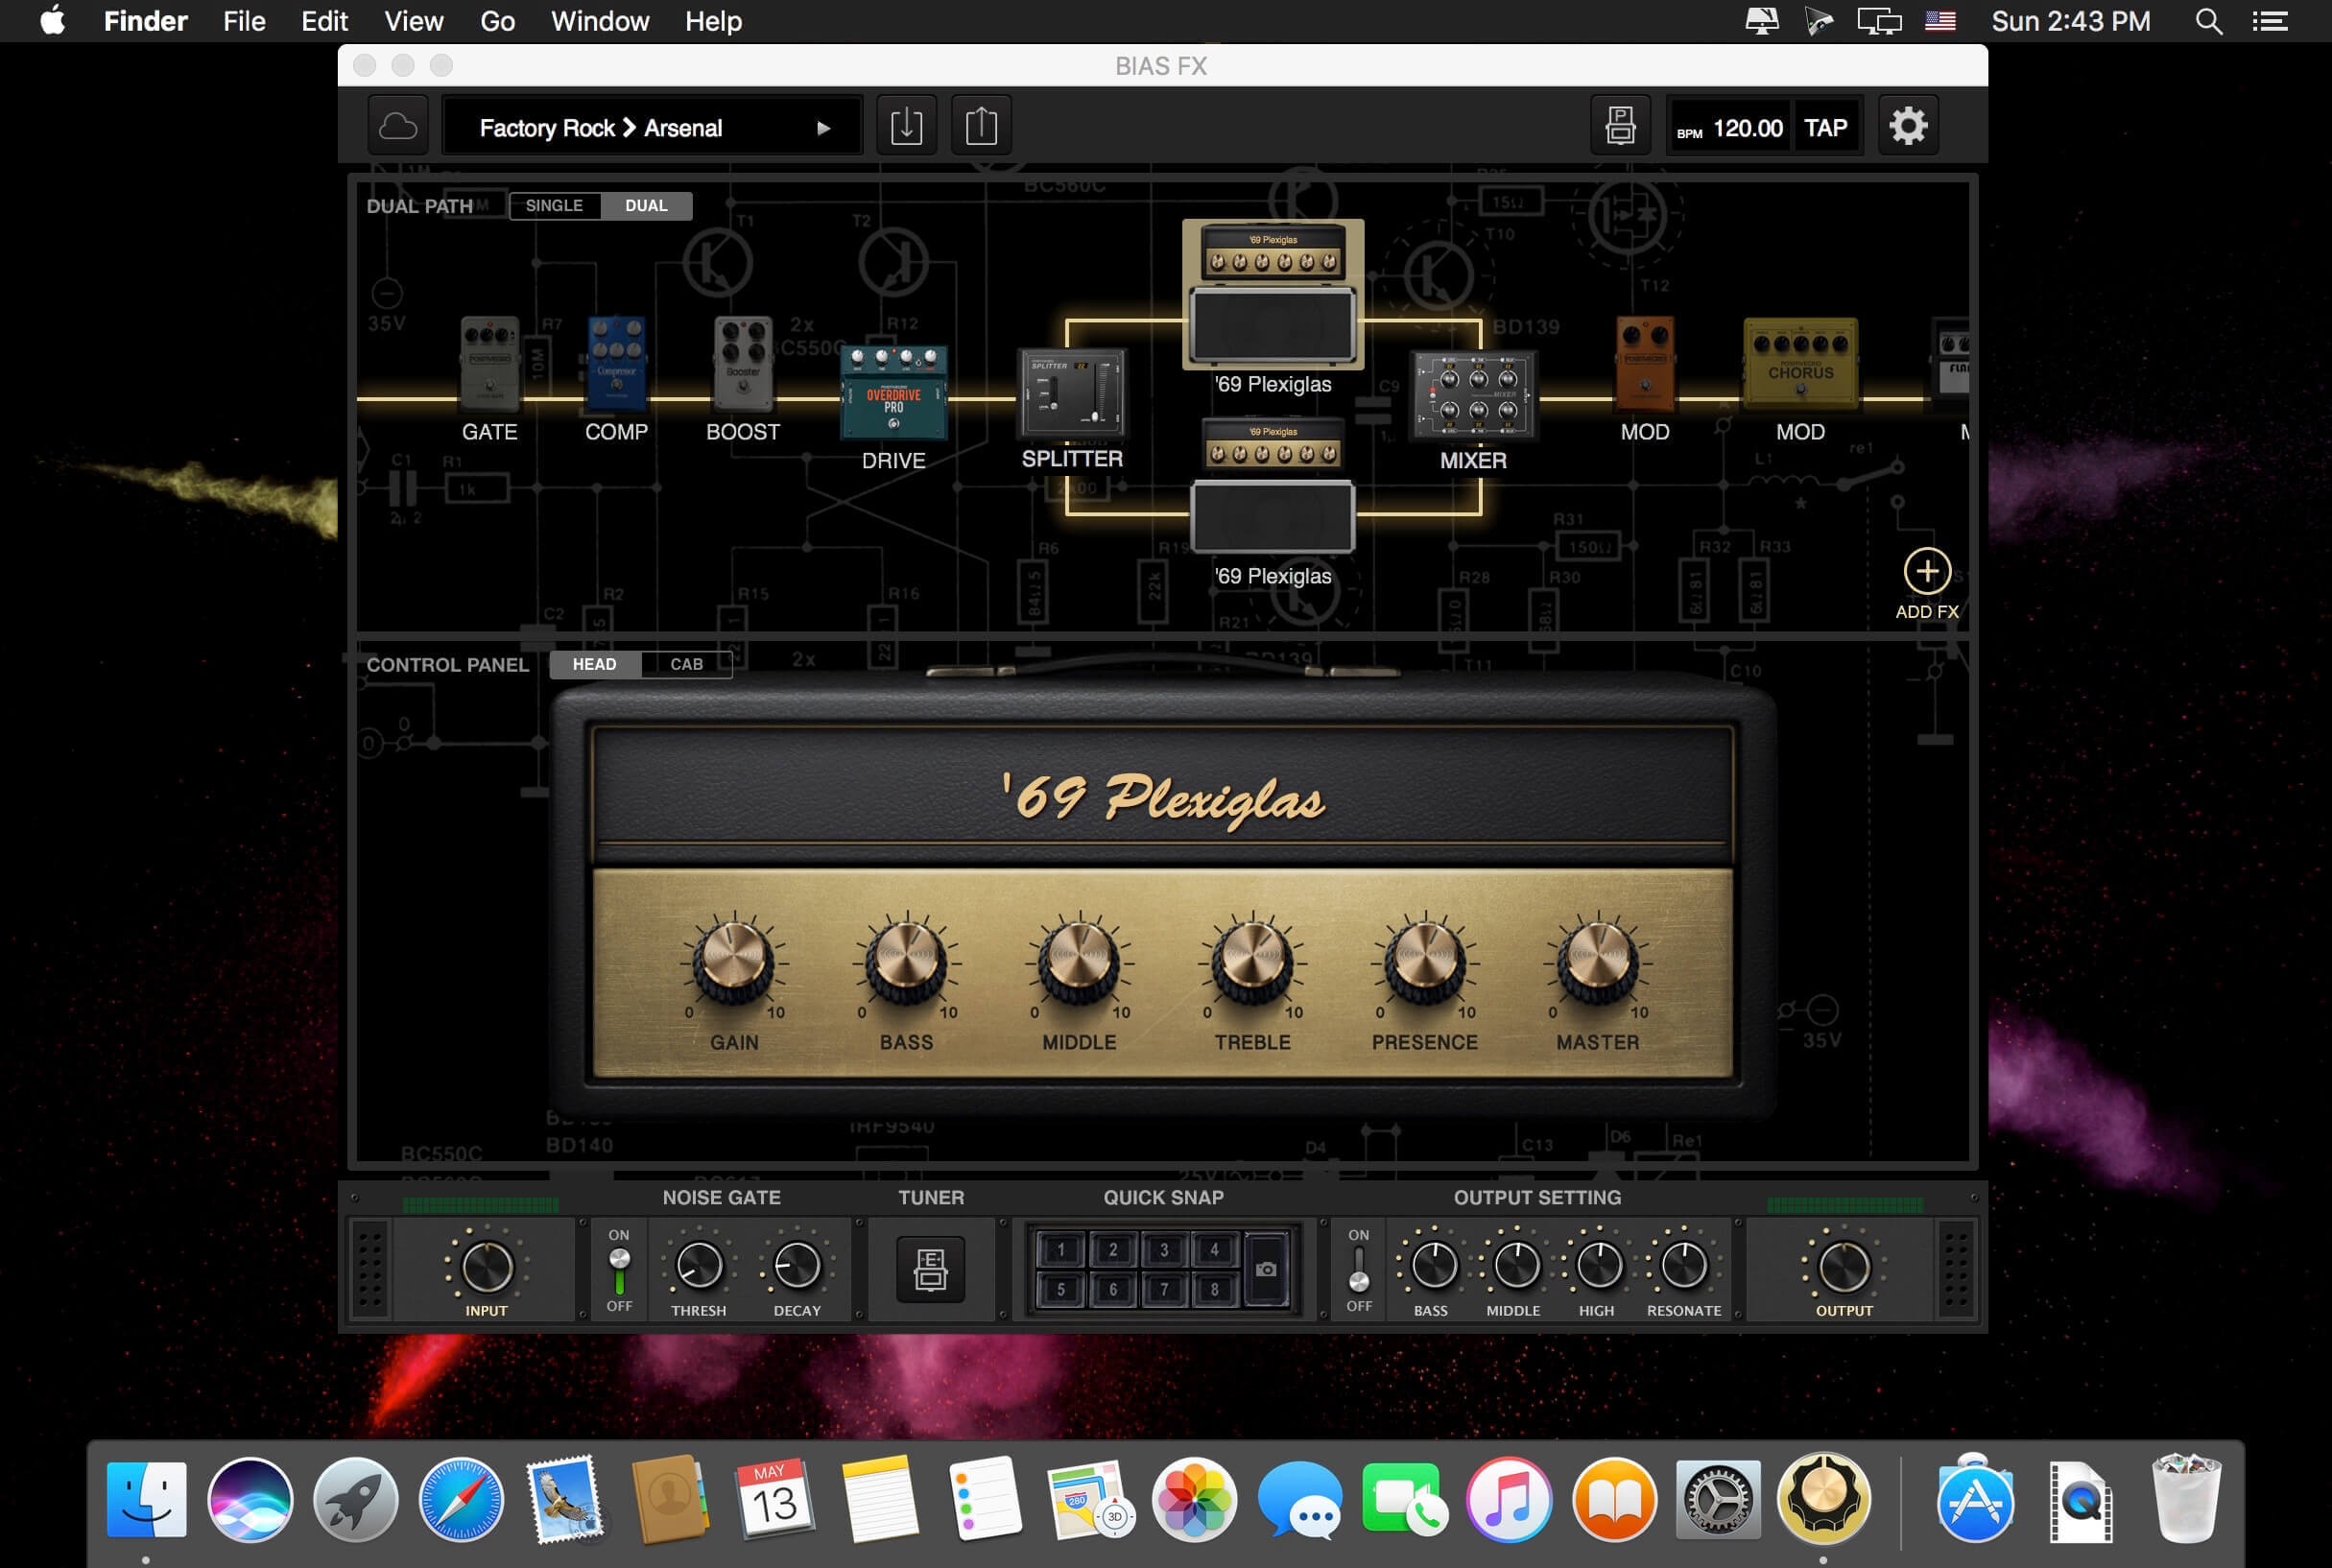 Positive Grid BIAS FX Pro (with working ToneCloud) v1 6 2 3448